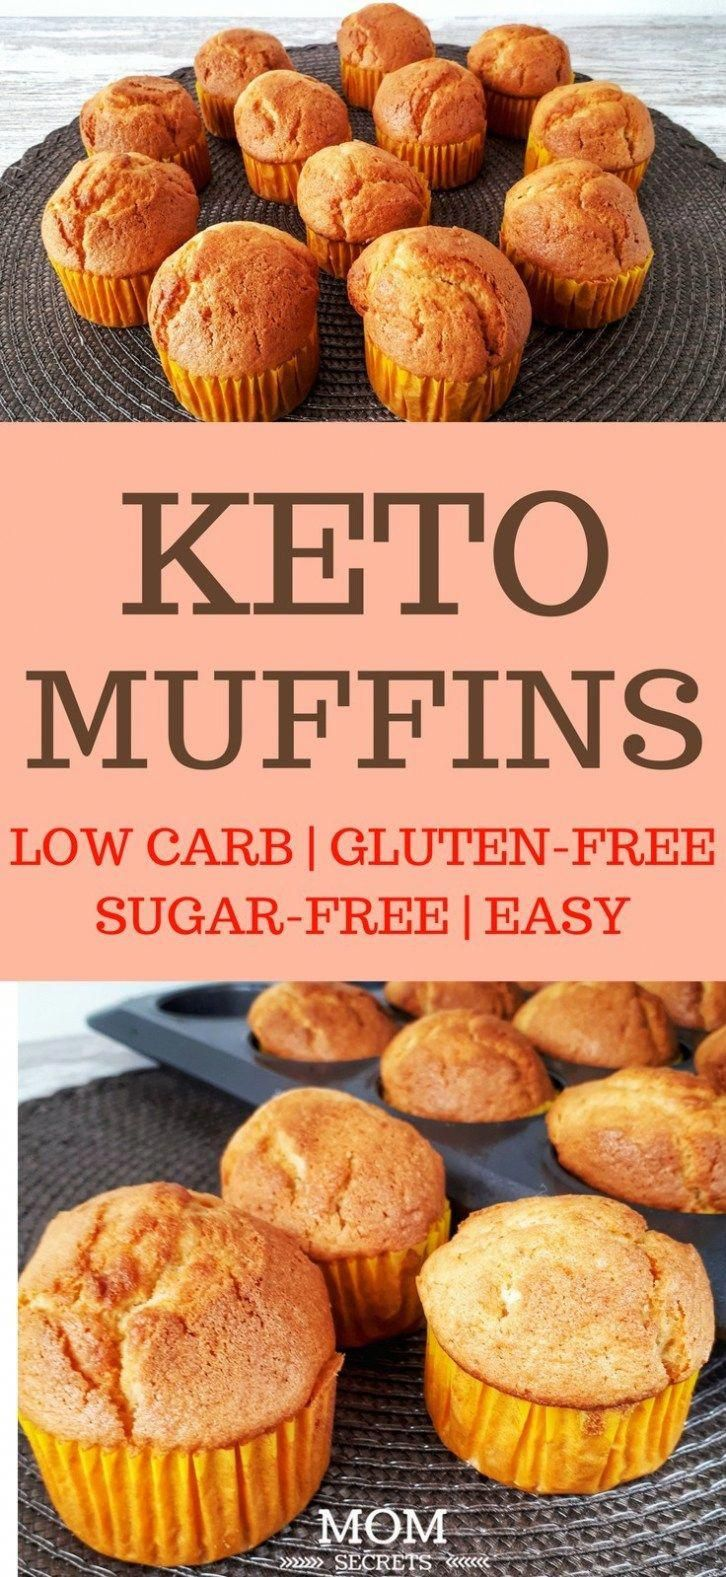 Best Keto Breakfast Muffins - How Do You Make Keto Muffins? One of the easiest and healthiest way to start your day is with Keto breakfast muffins. Check my favorite Keto muffin recipes - fast and simple! #keto #ketorecipes #lowcarb #muffins #breakfast #weightwatchers #ketodiet #ketogenic #QuickKetoBreakfastIdeas